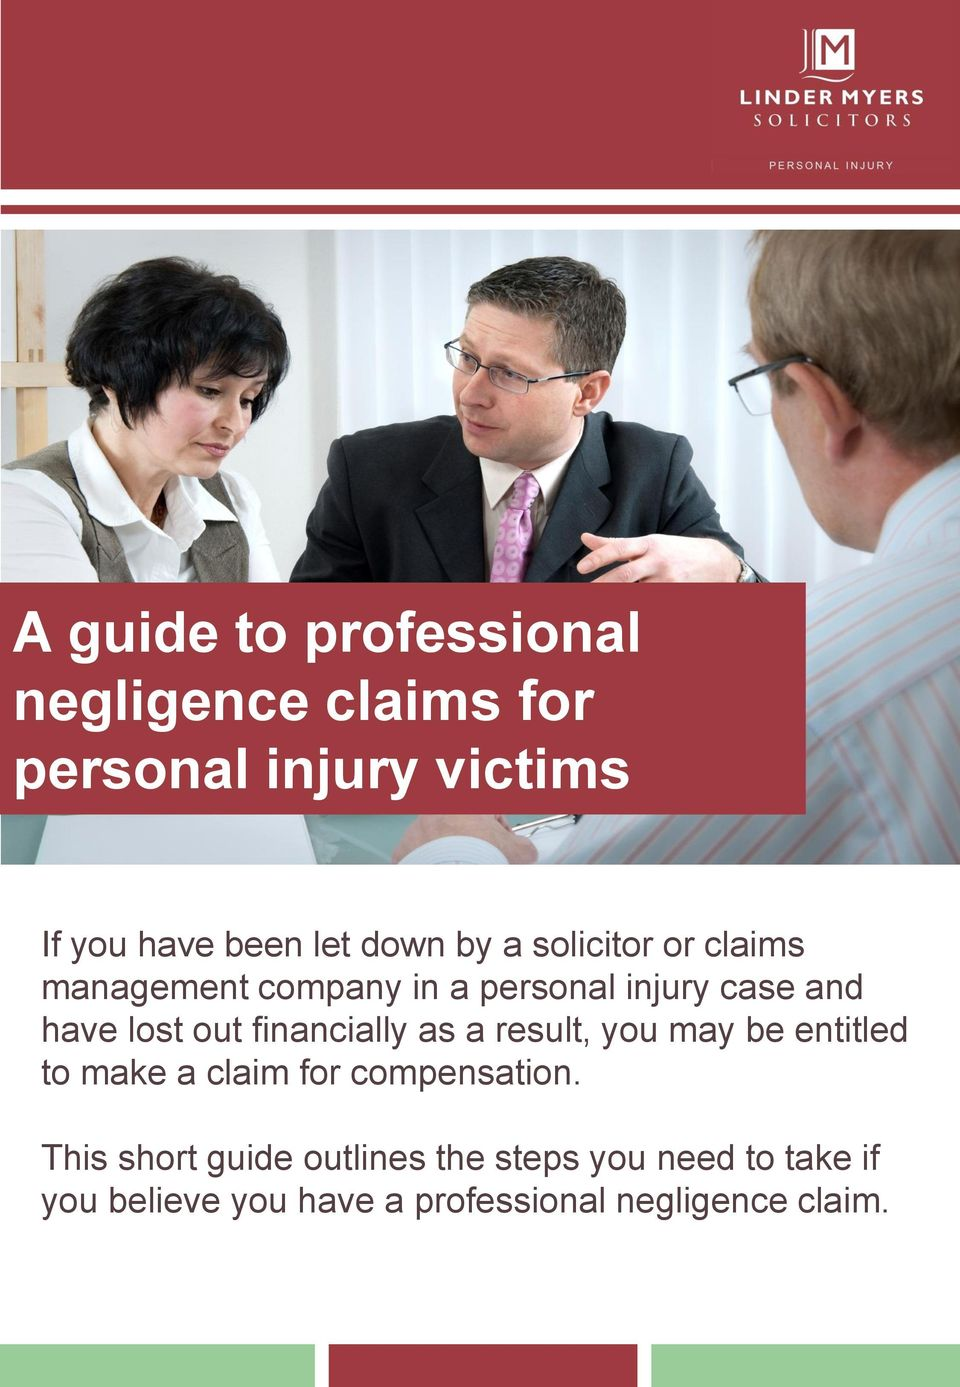 financially as a result, you may be entitled to make a claim for compensation.